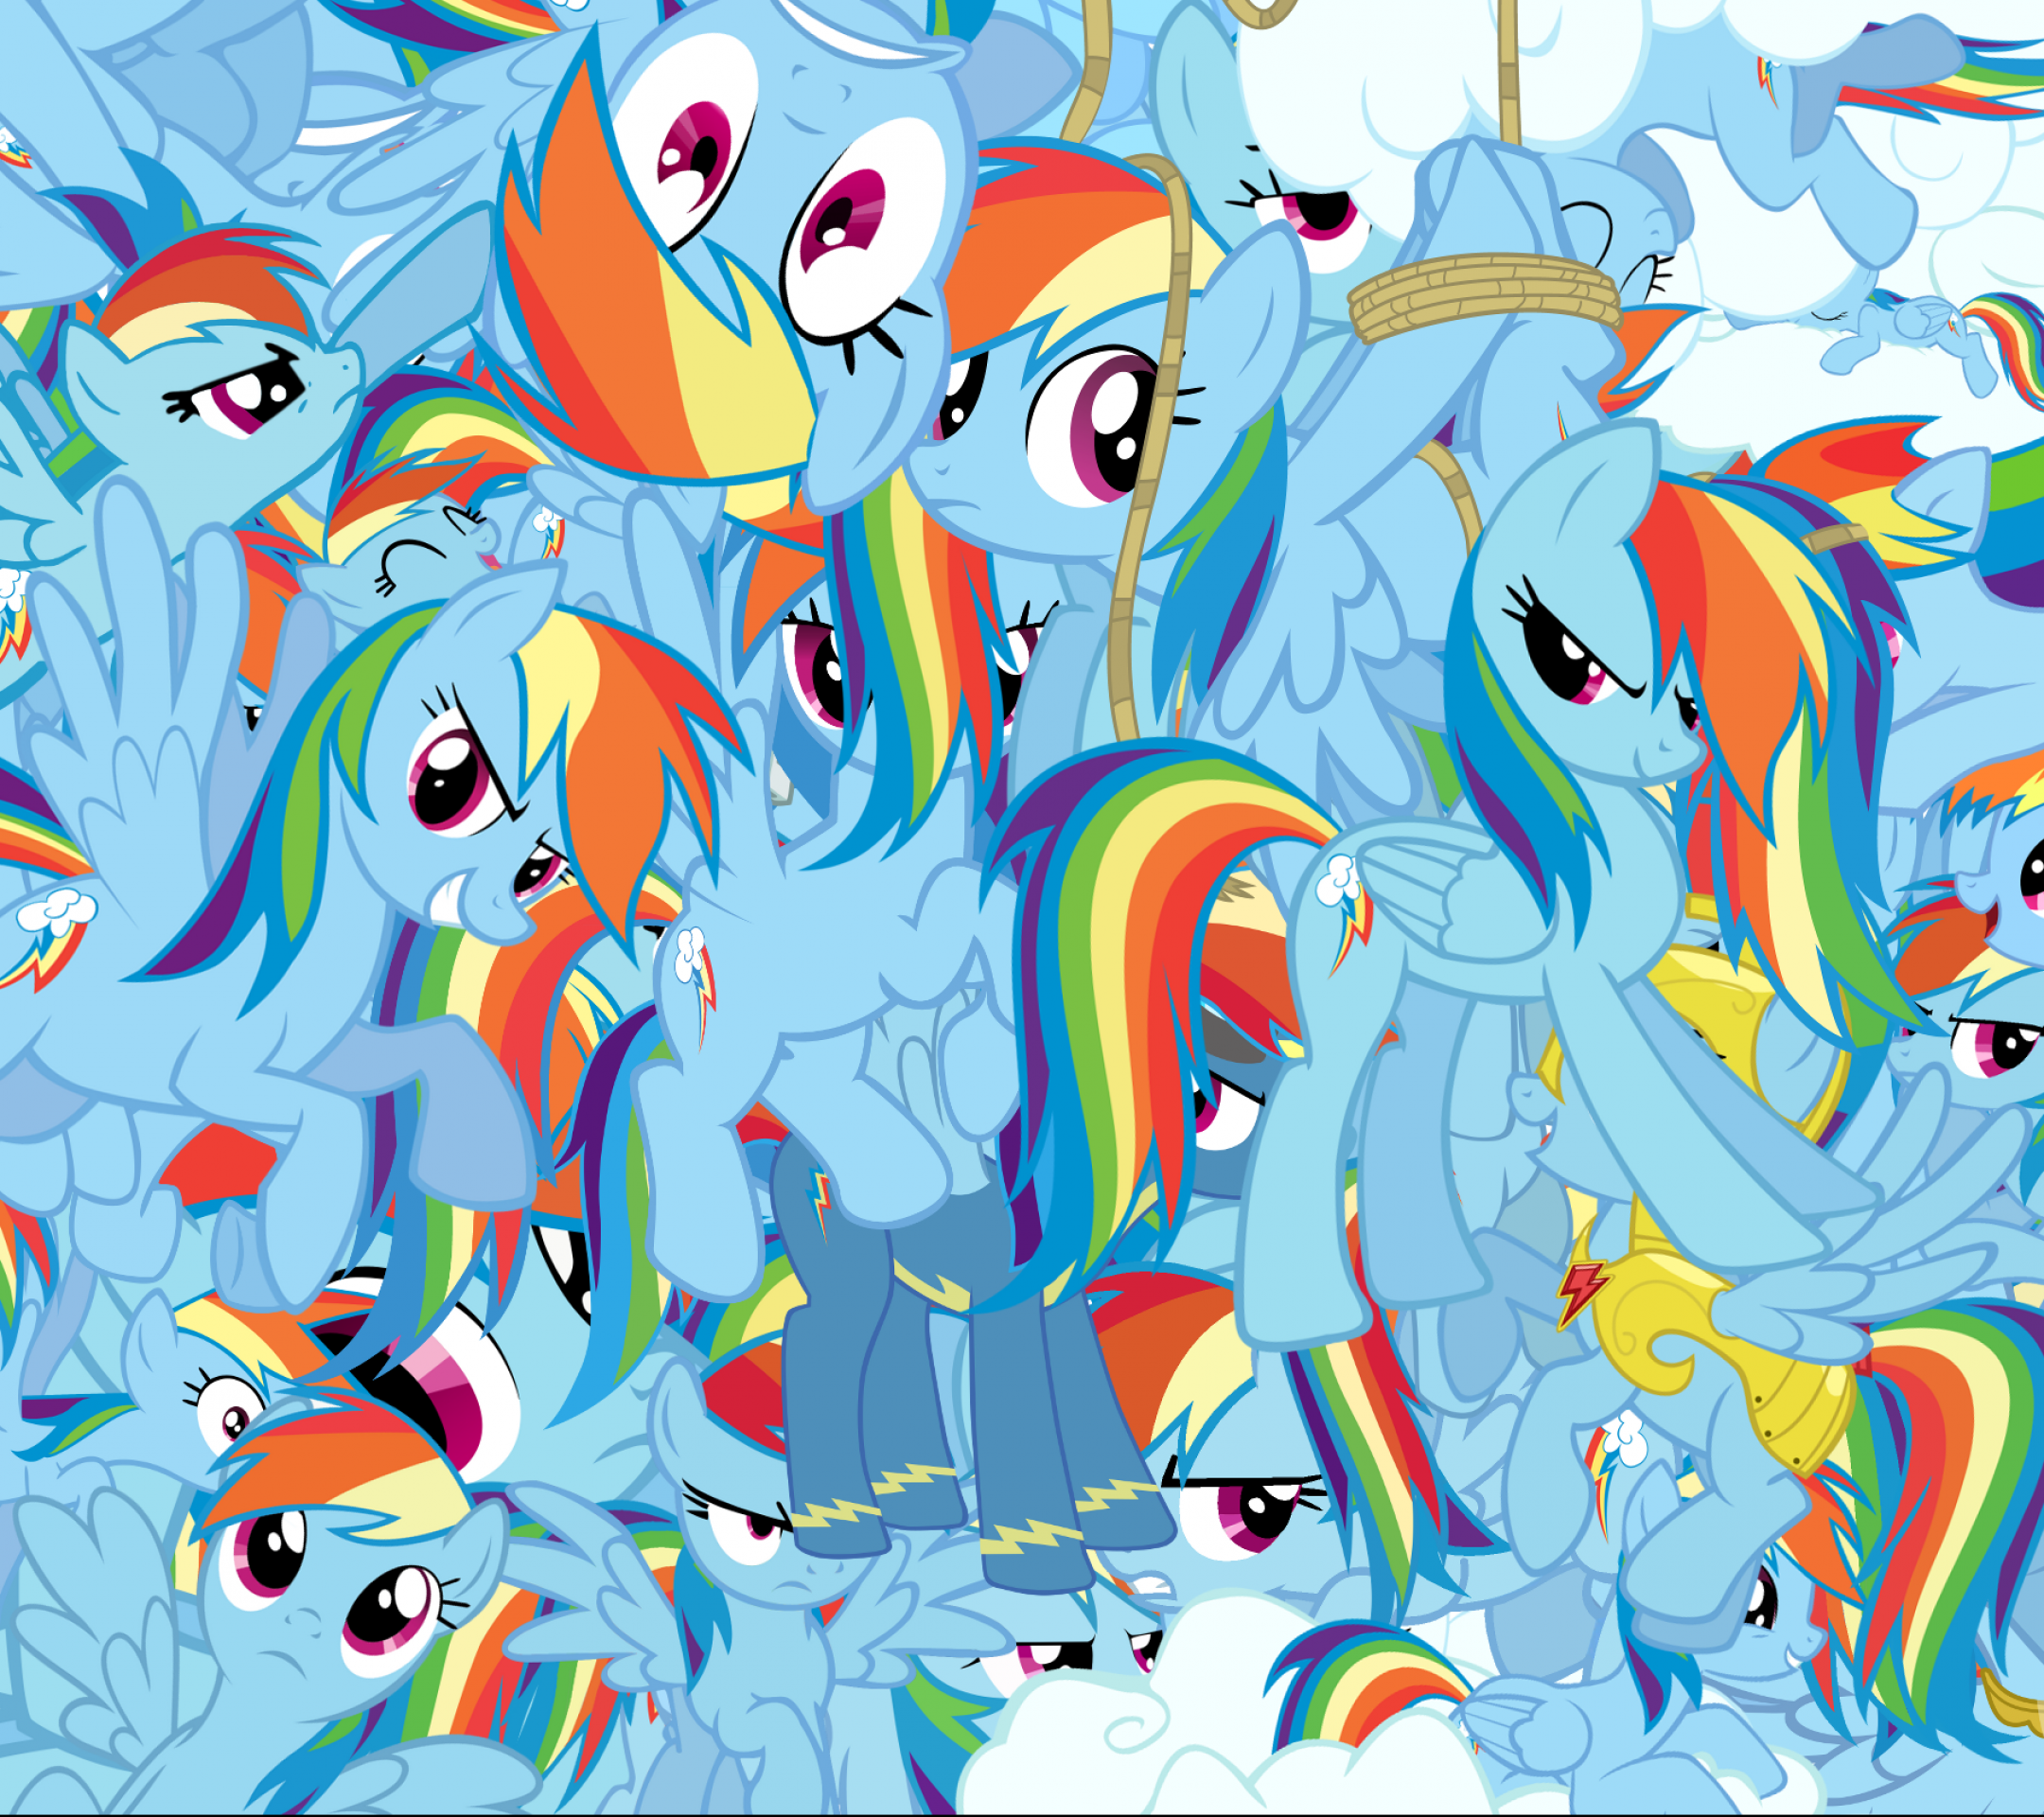 Tv Show My Little Pony Friendship Is Magic 2160x1920 Wallpaper